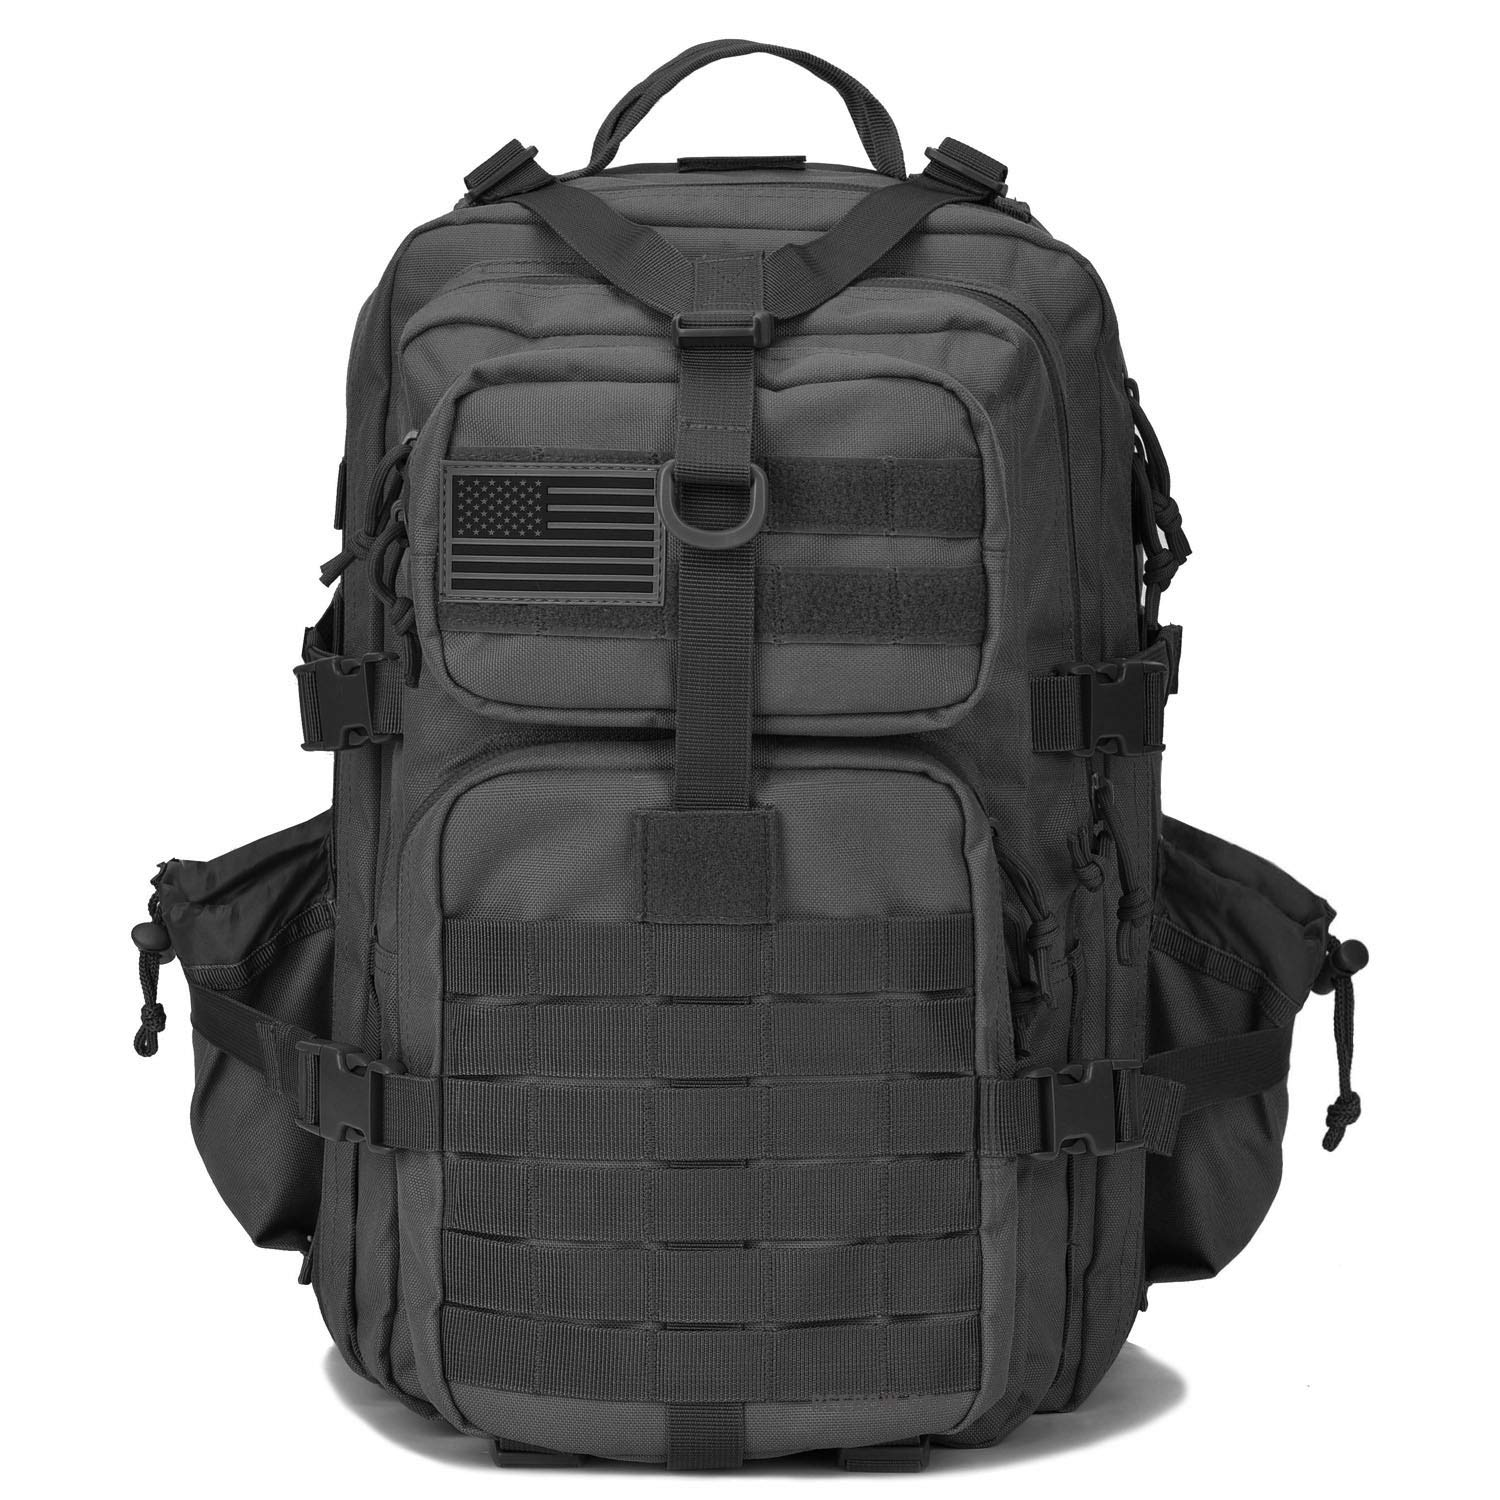 Military Tactical Backpack w/Bottle Holder, Small 3 Day Assault Pack Army Molle Bug Bag Backpacks Rucksack for Hiking Camping Trekking Hunting Travel Black by REEBOW TACTICAL